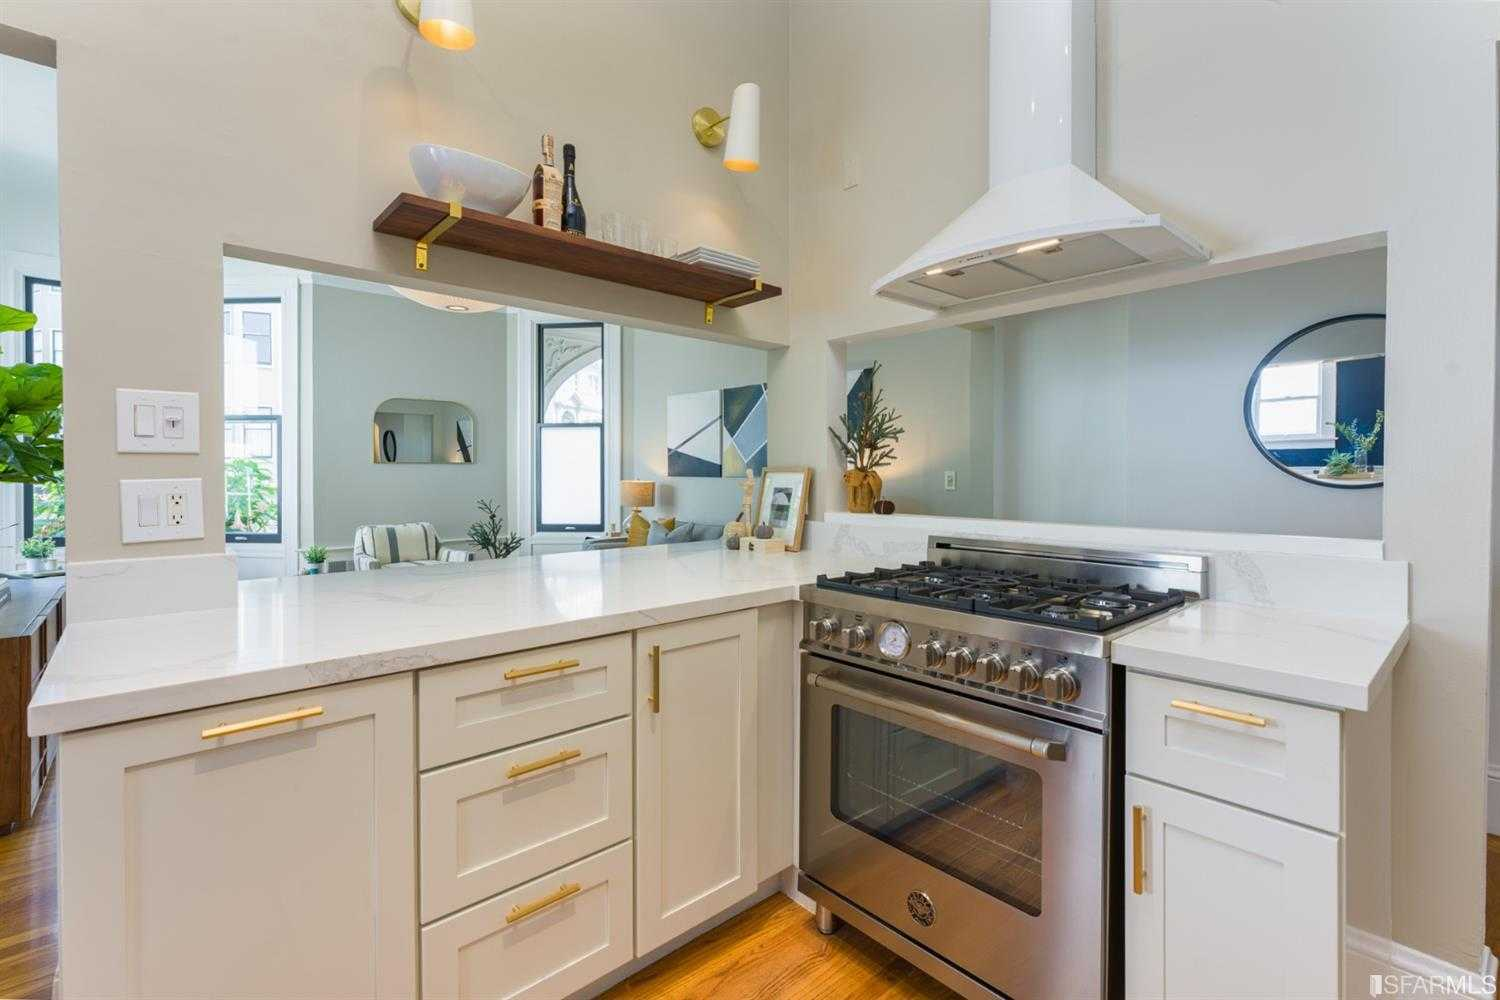 $1,289,000 - 2Br/1Ba -  for Sale in San Francisco